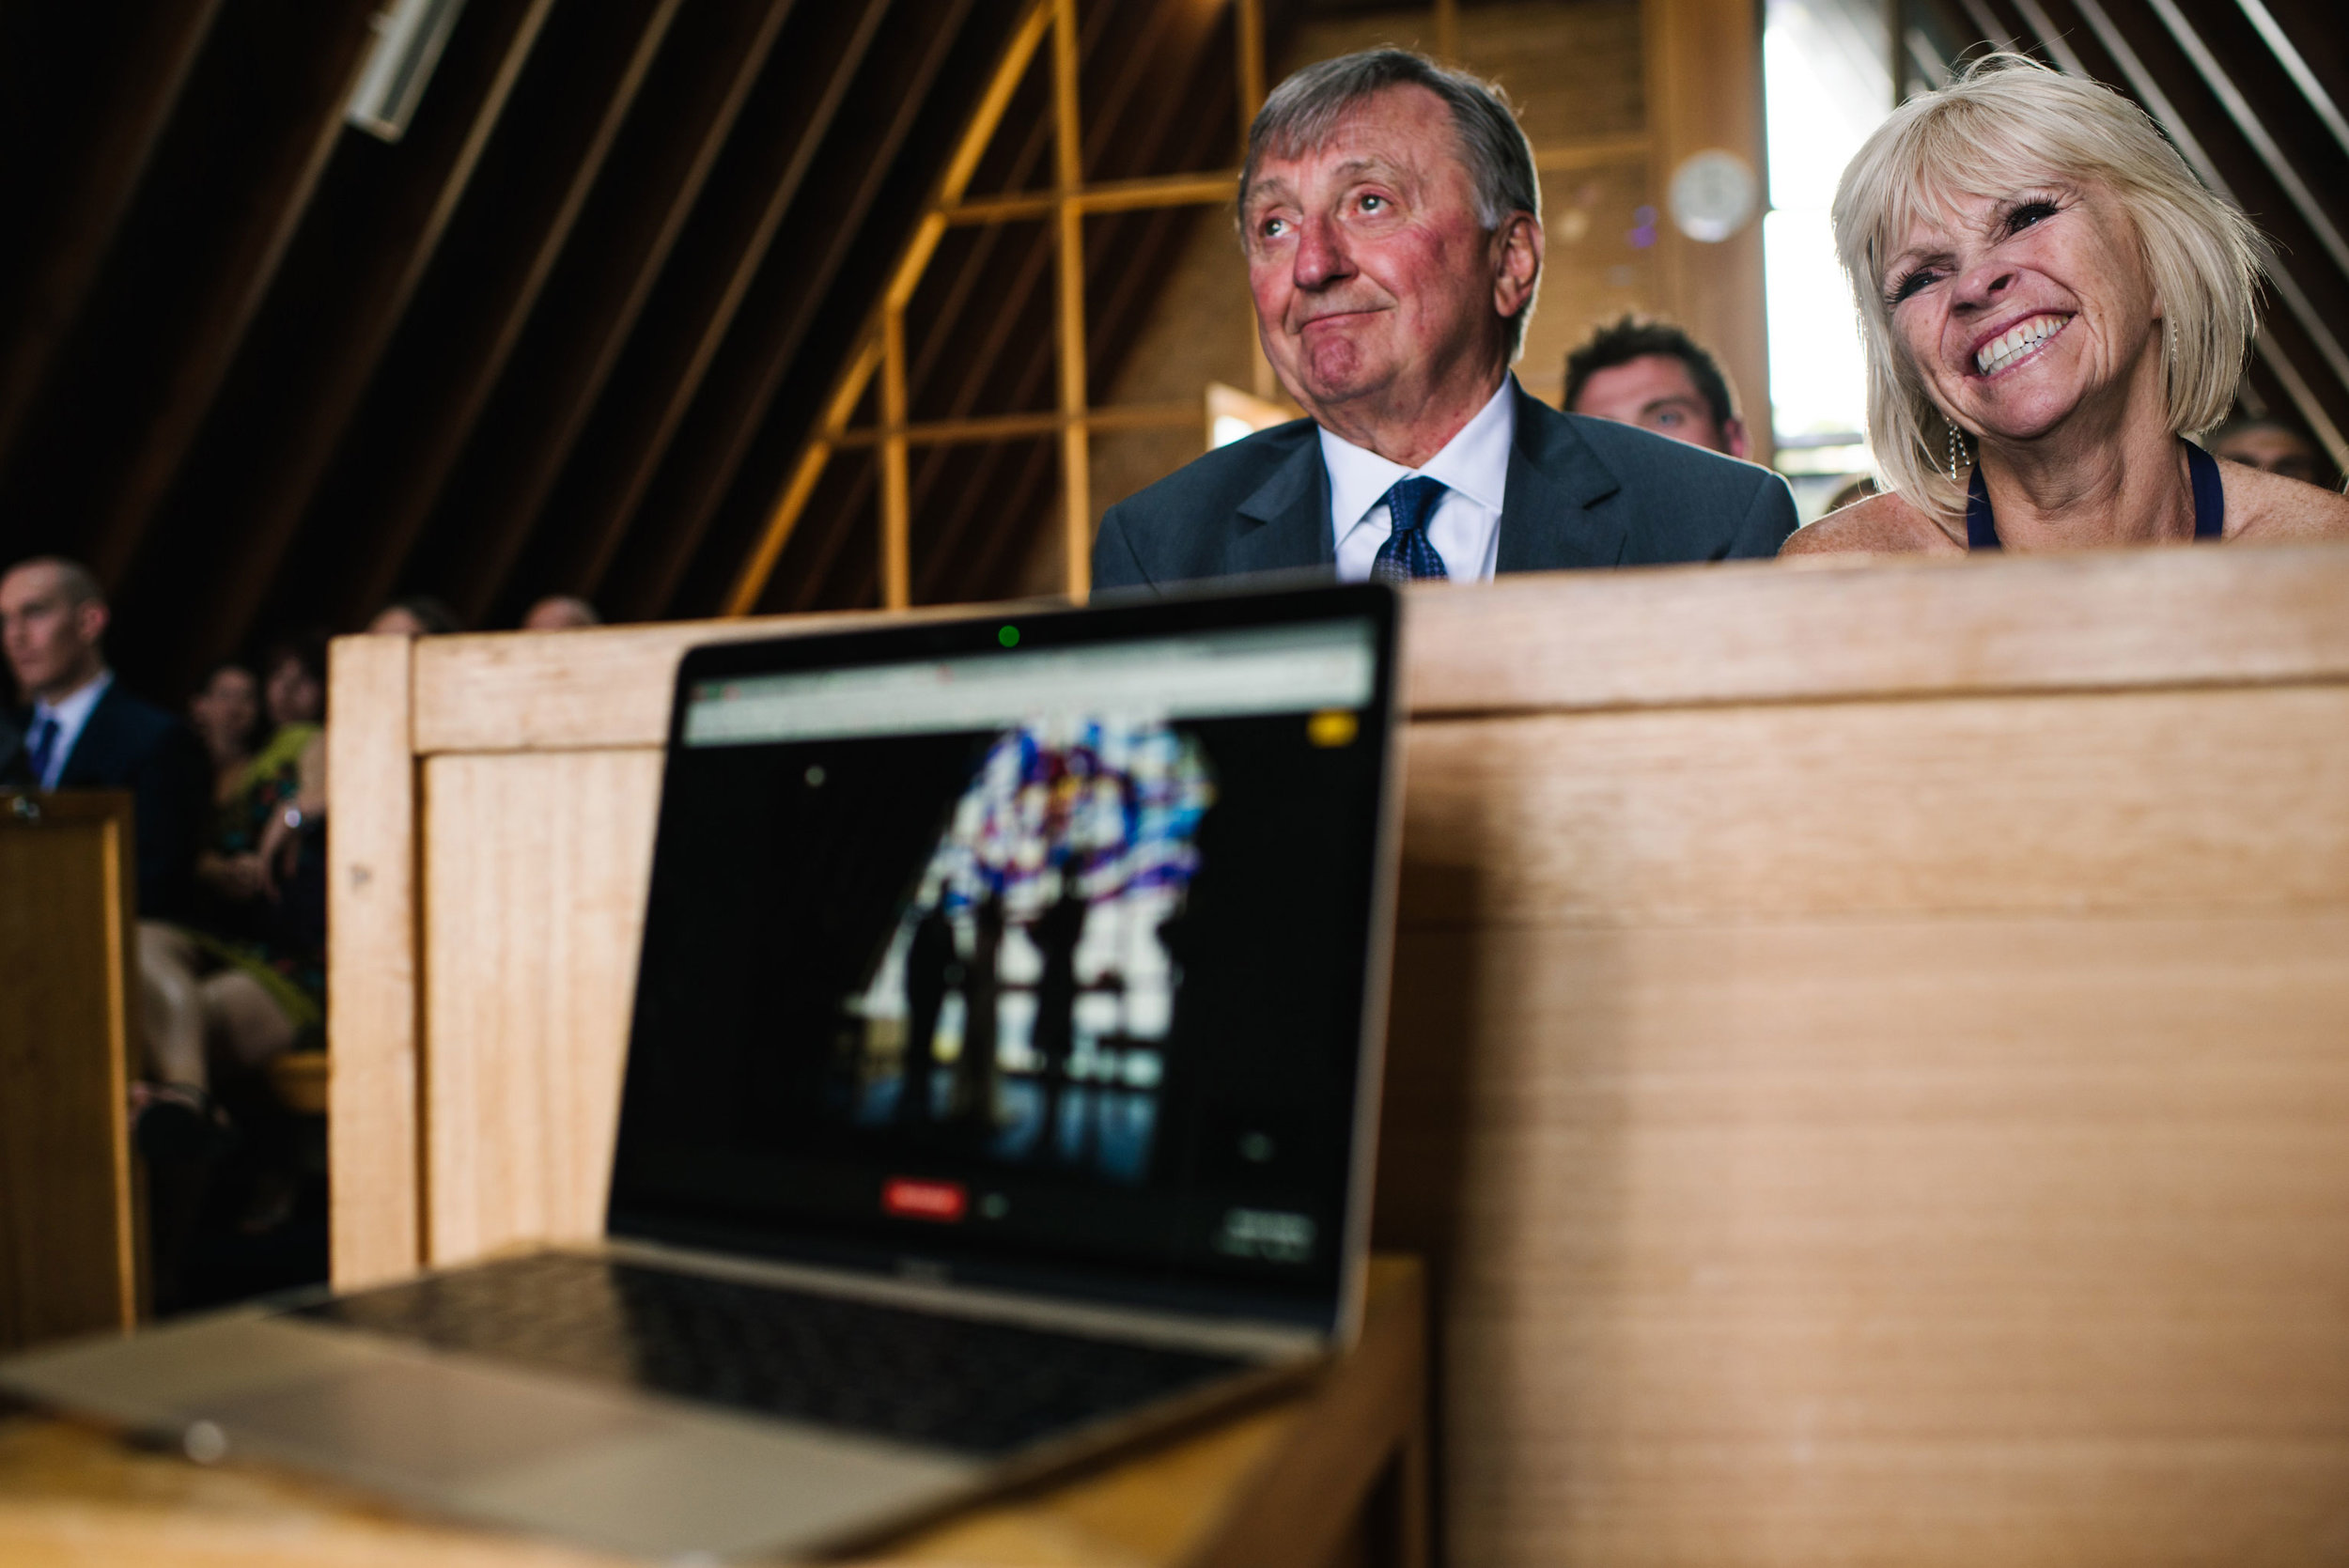 Parents of the bride smile as they watch wedding ceremony